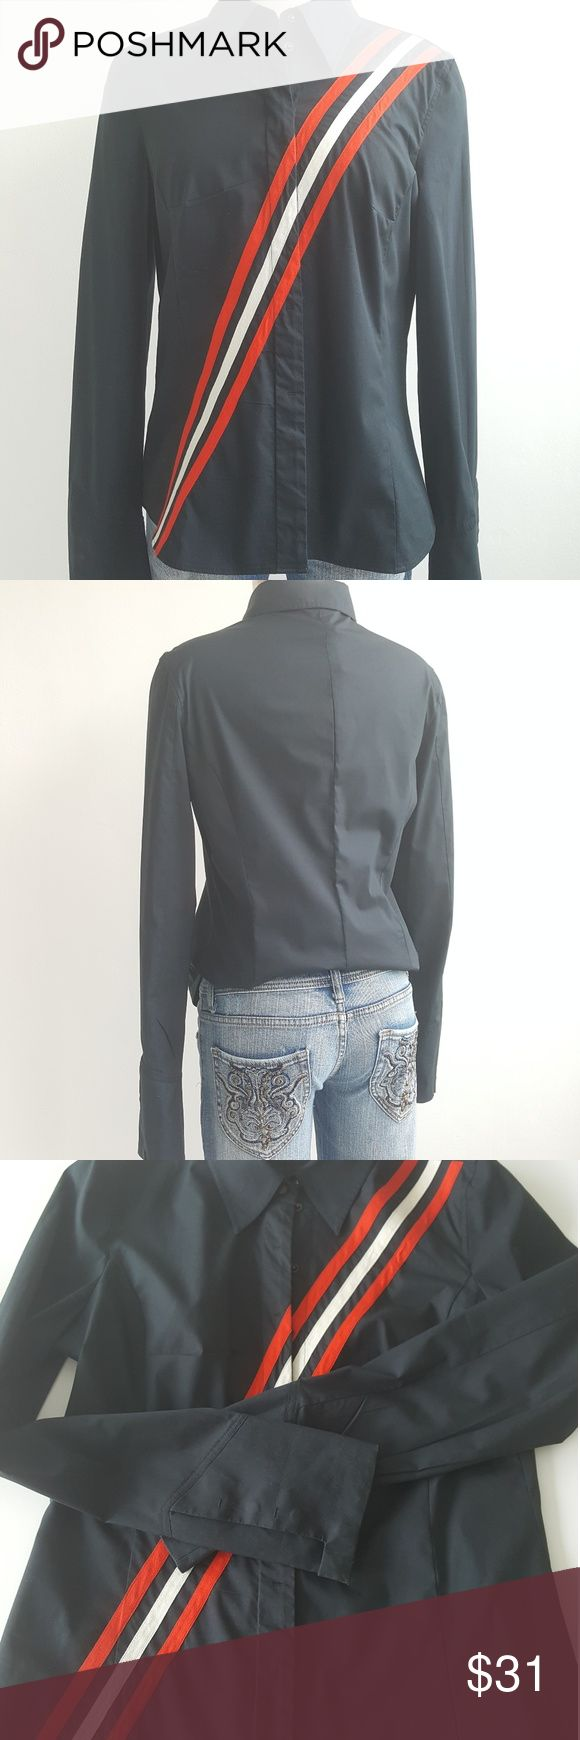 """Hugo Boss Button Down Women's Blouse Hugo Boss navy blue blouse with straps details on the front, great with white jeans or skirt,  gently used and good conditions,  snap closure. 98% cotton 2% spandex.  Measurements are length 24"""" bust 36"""" waist 34"""" Hugo Boss Tops Blouses"""